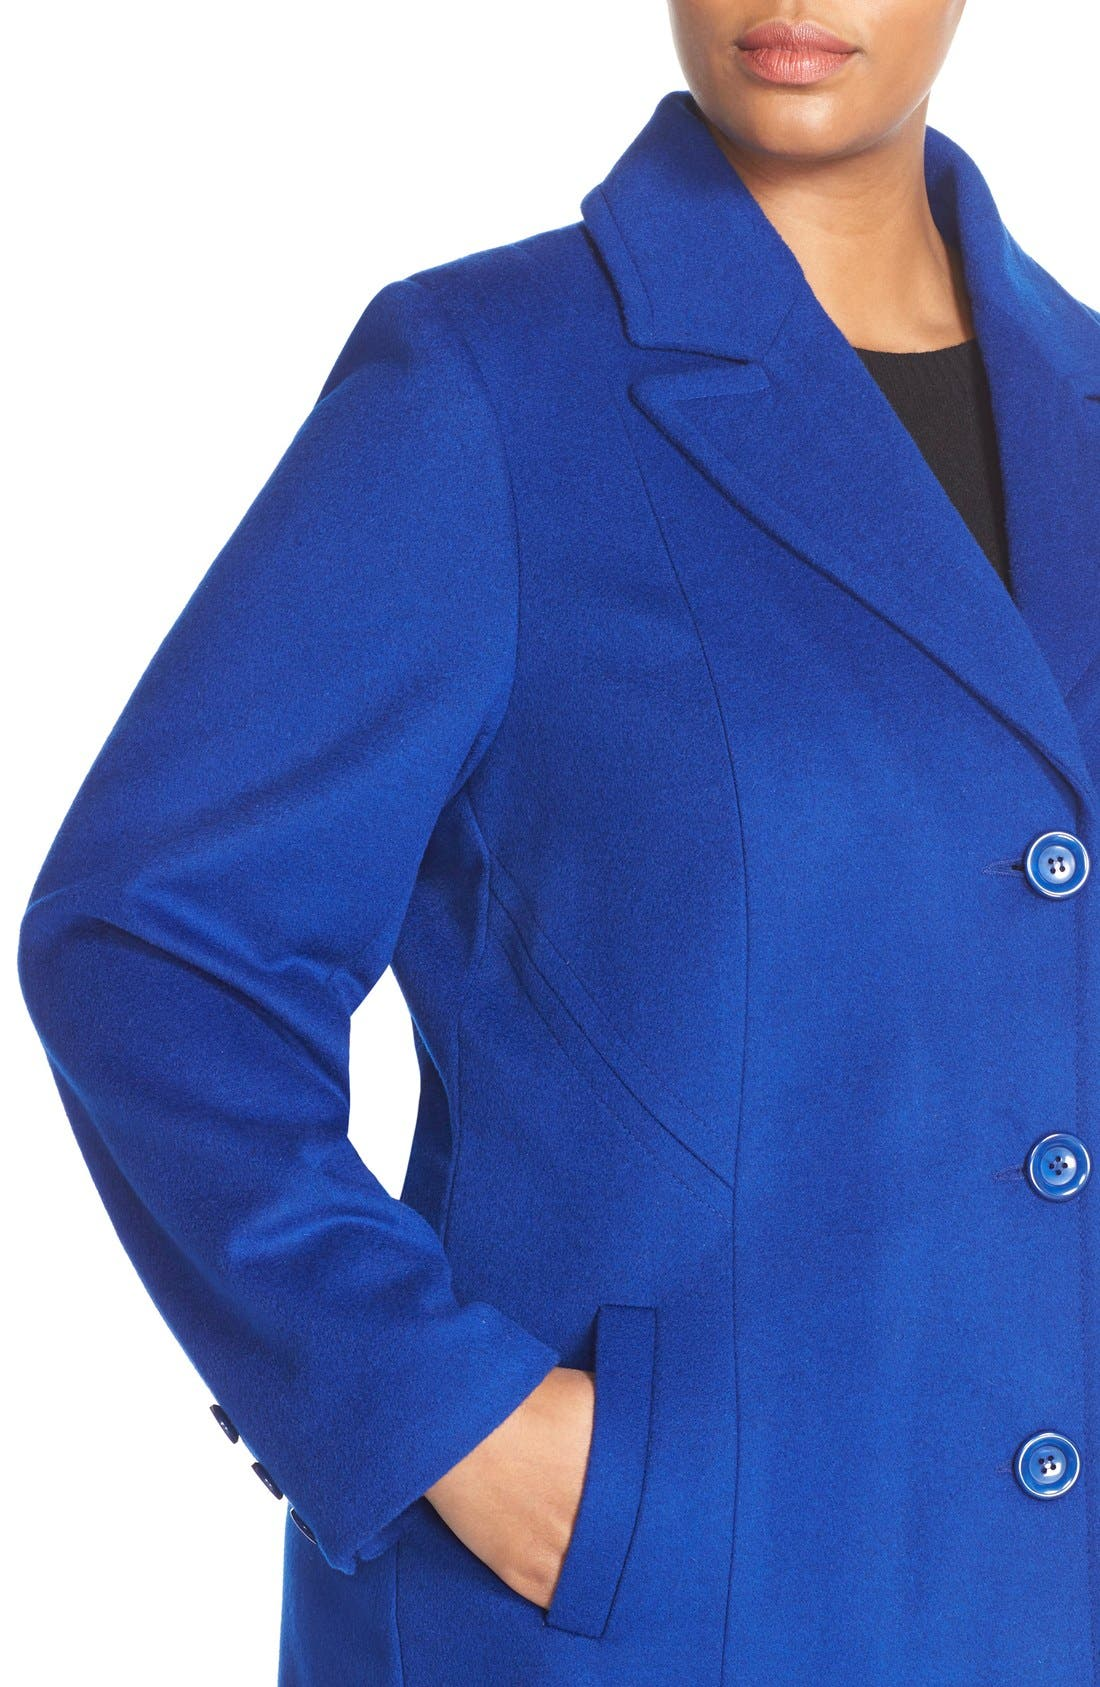 Notch Collar Wool Blend Coat,                             Alternate thumbnail 4, color,                             Cobalt